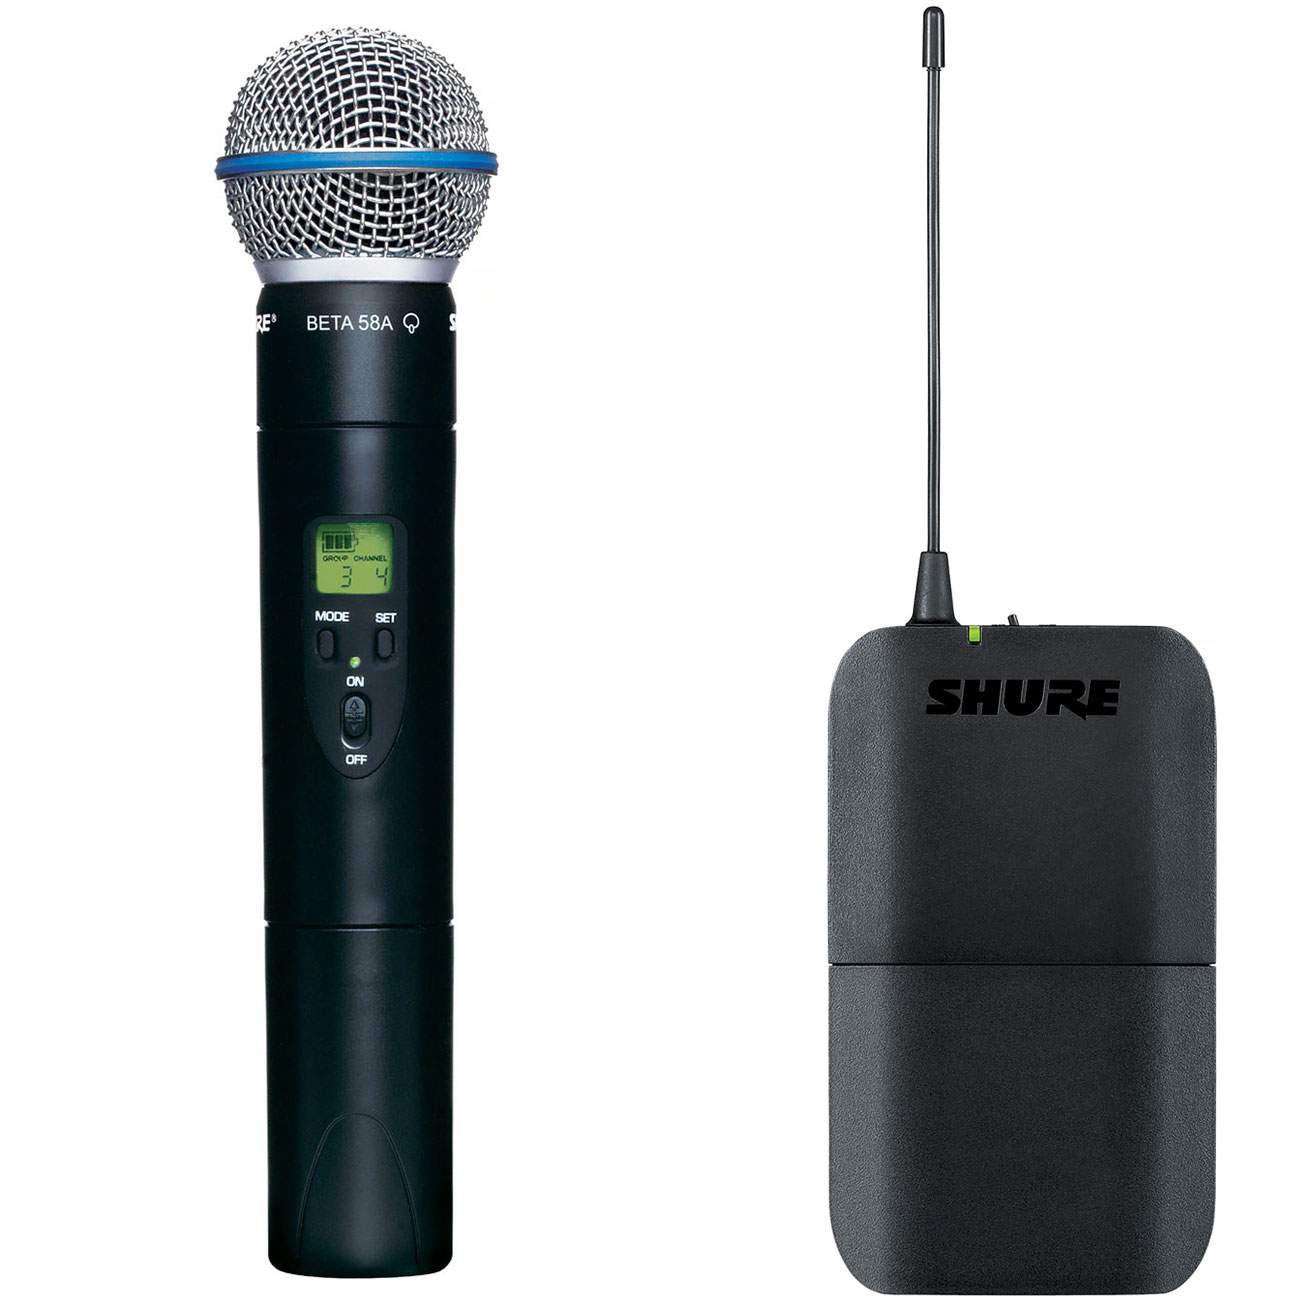 Shure BLX Handheld Transmitter with BETA58 Microphone